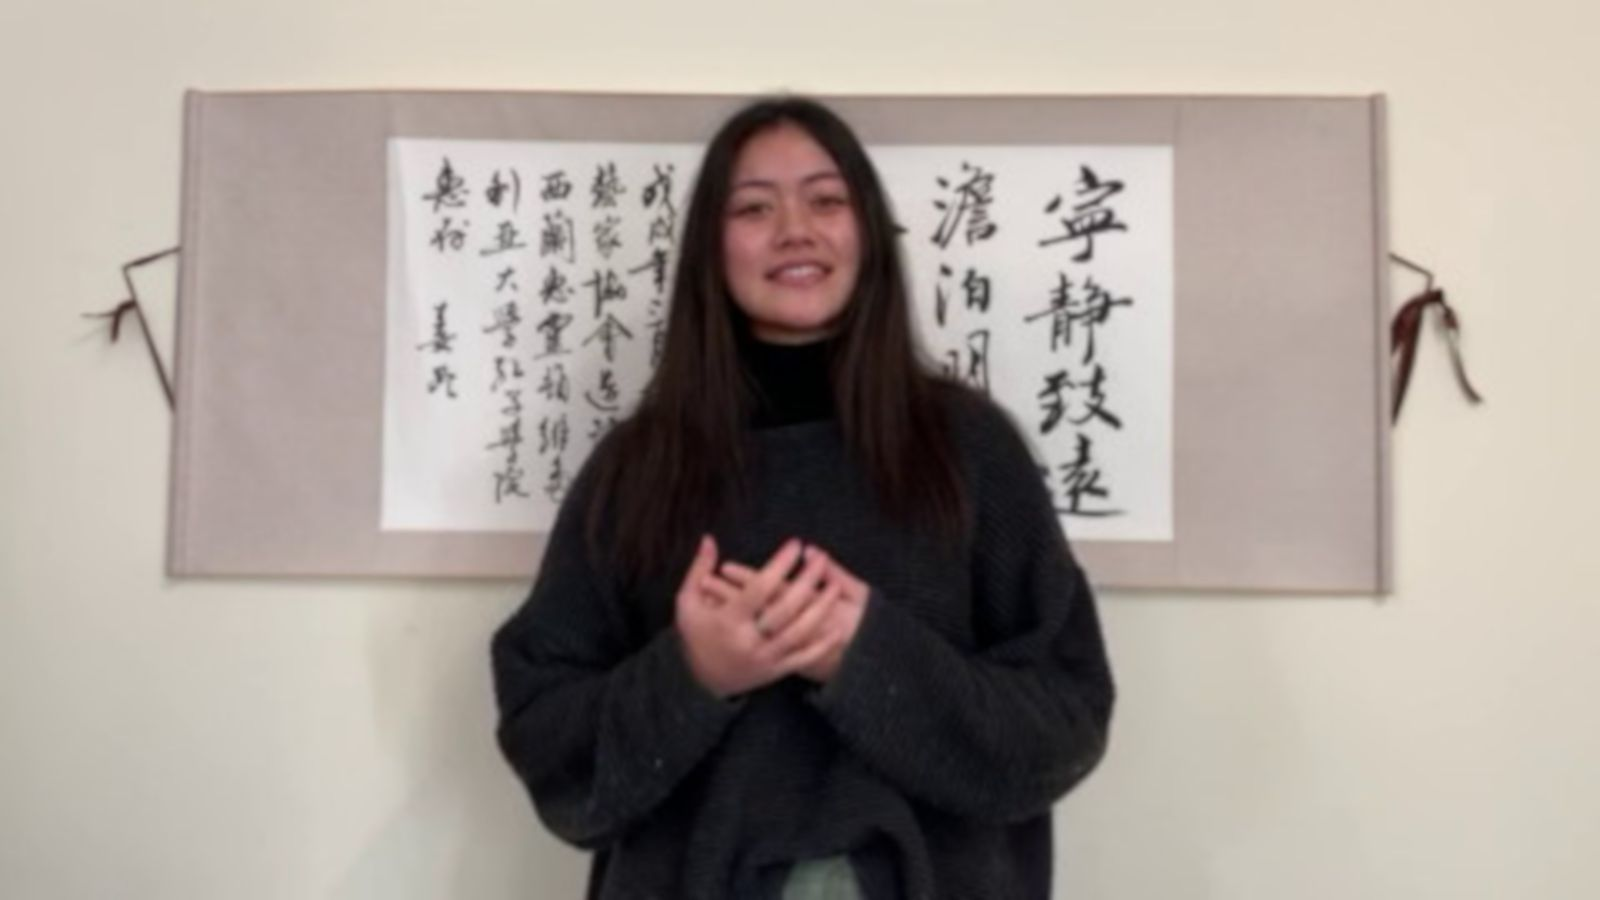 Monica Saili gives her winning speech in front of a piece of Chinese calligraphy